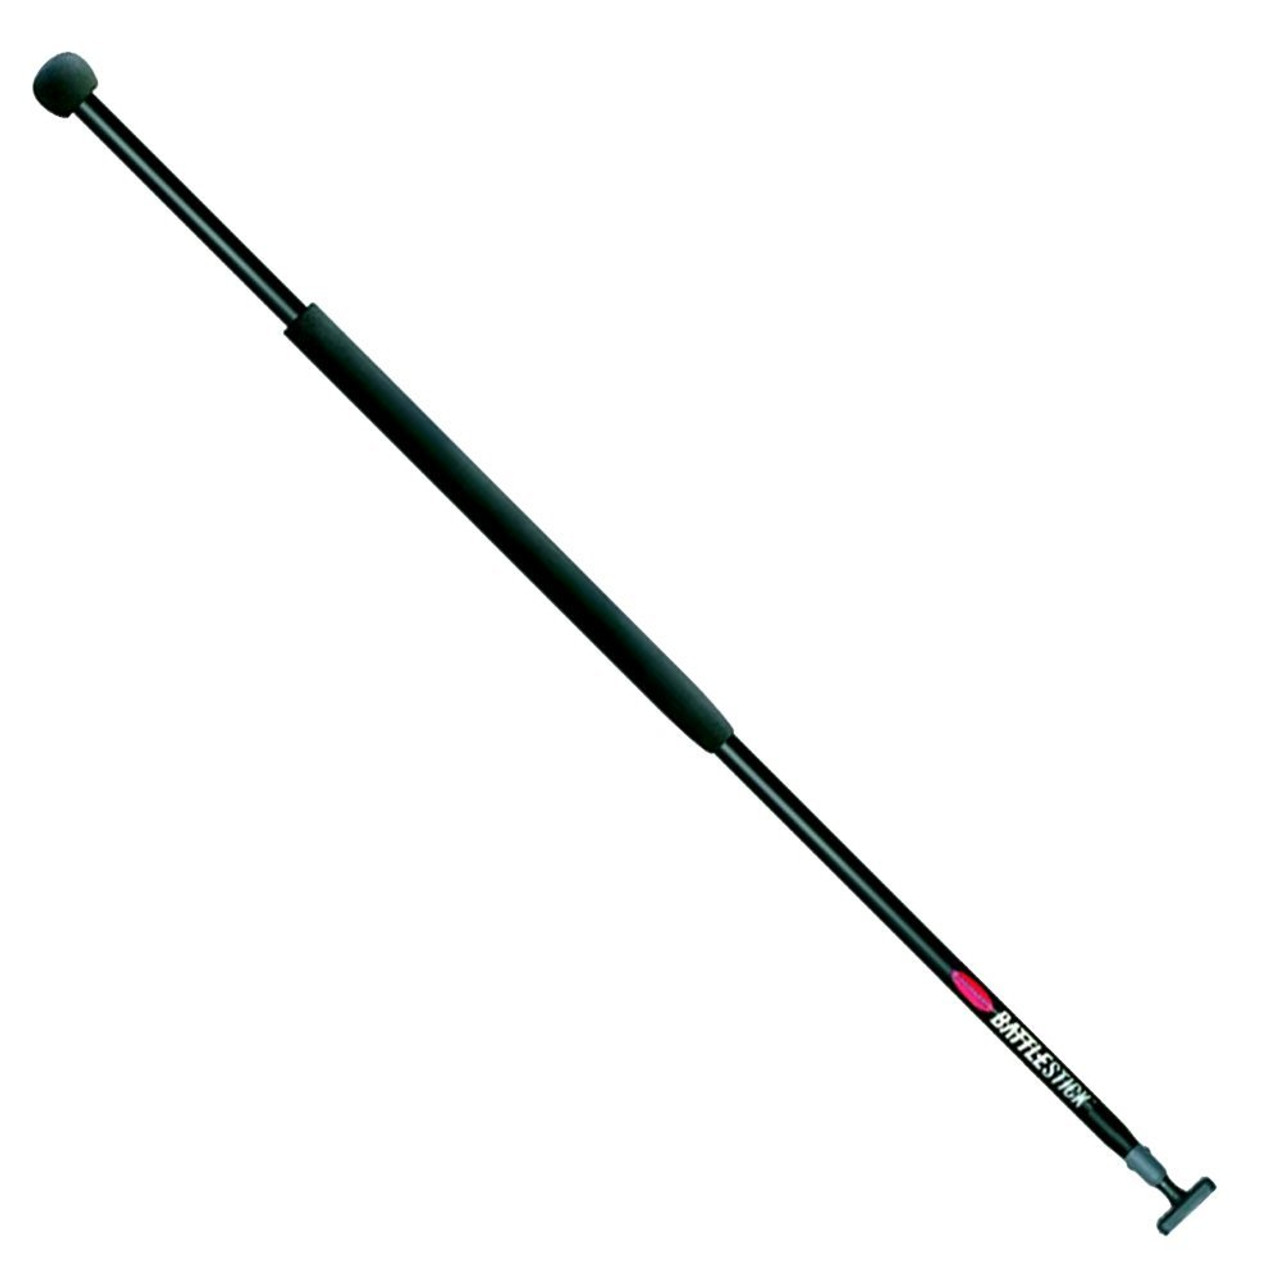 Ronstan Battlestick Telescopic Lightweight Alloy - Split Grip - 740-. [RF3131]